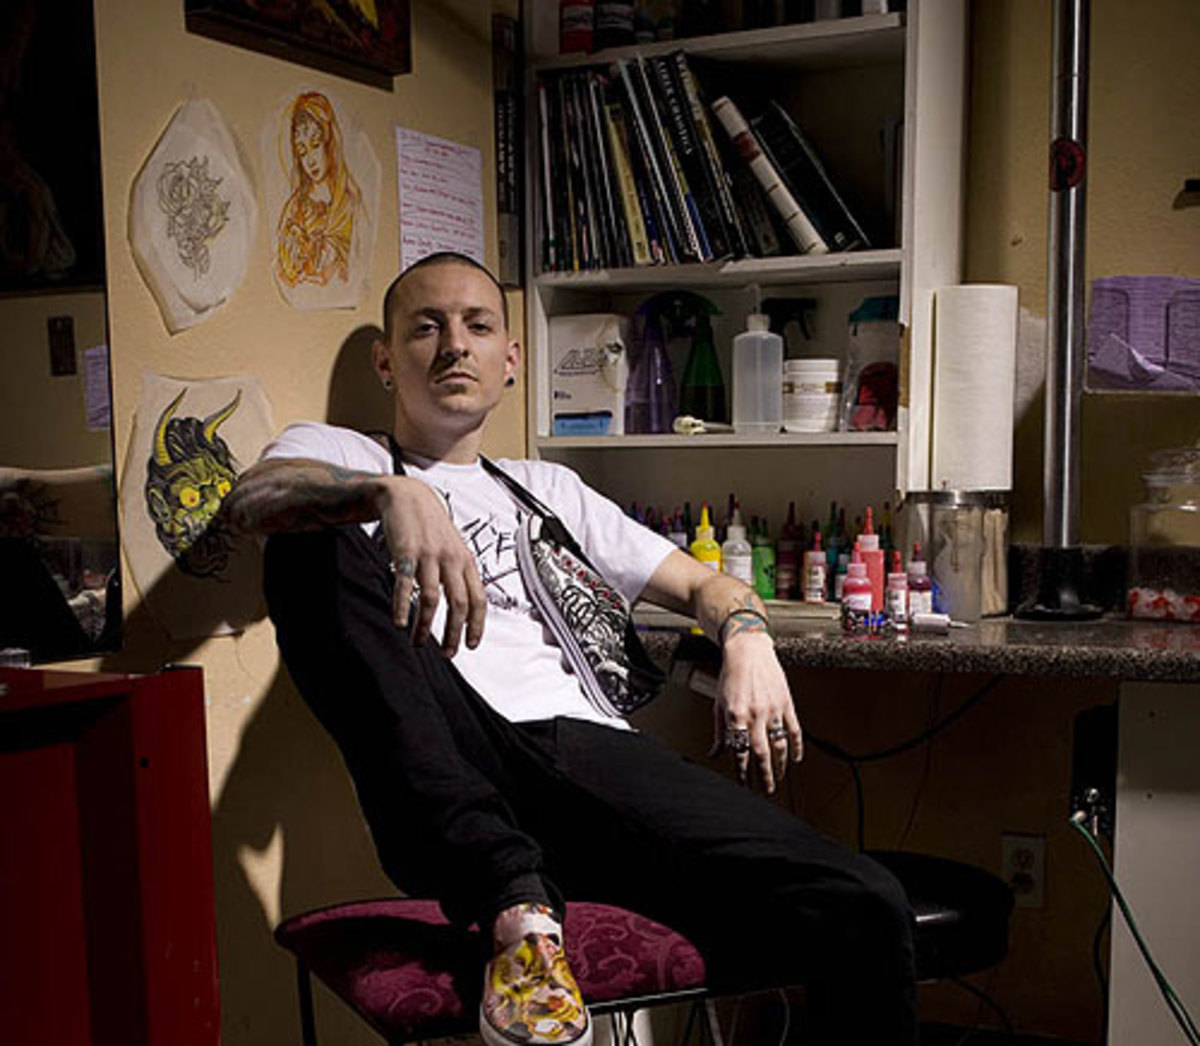 3. Chester Bennington of Linkin Park - The man of a thousand voices all rolled into one. Hes got one of those sounds where you are compelled to close your eyes and feel every note run through you, making you tremble. (Also had the pleasure of seeing